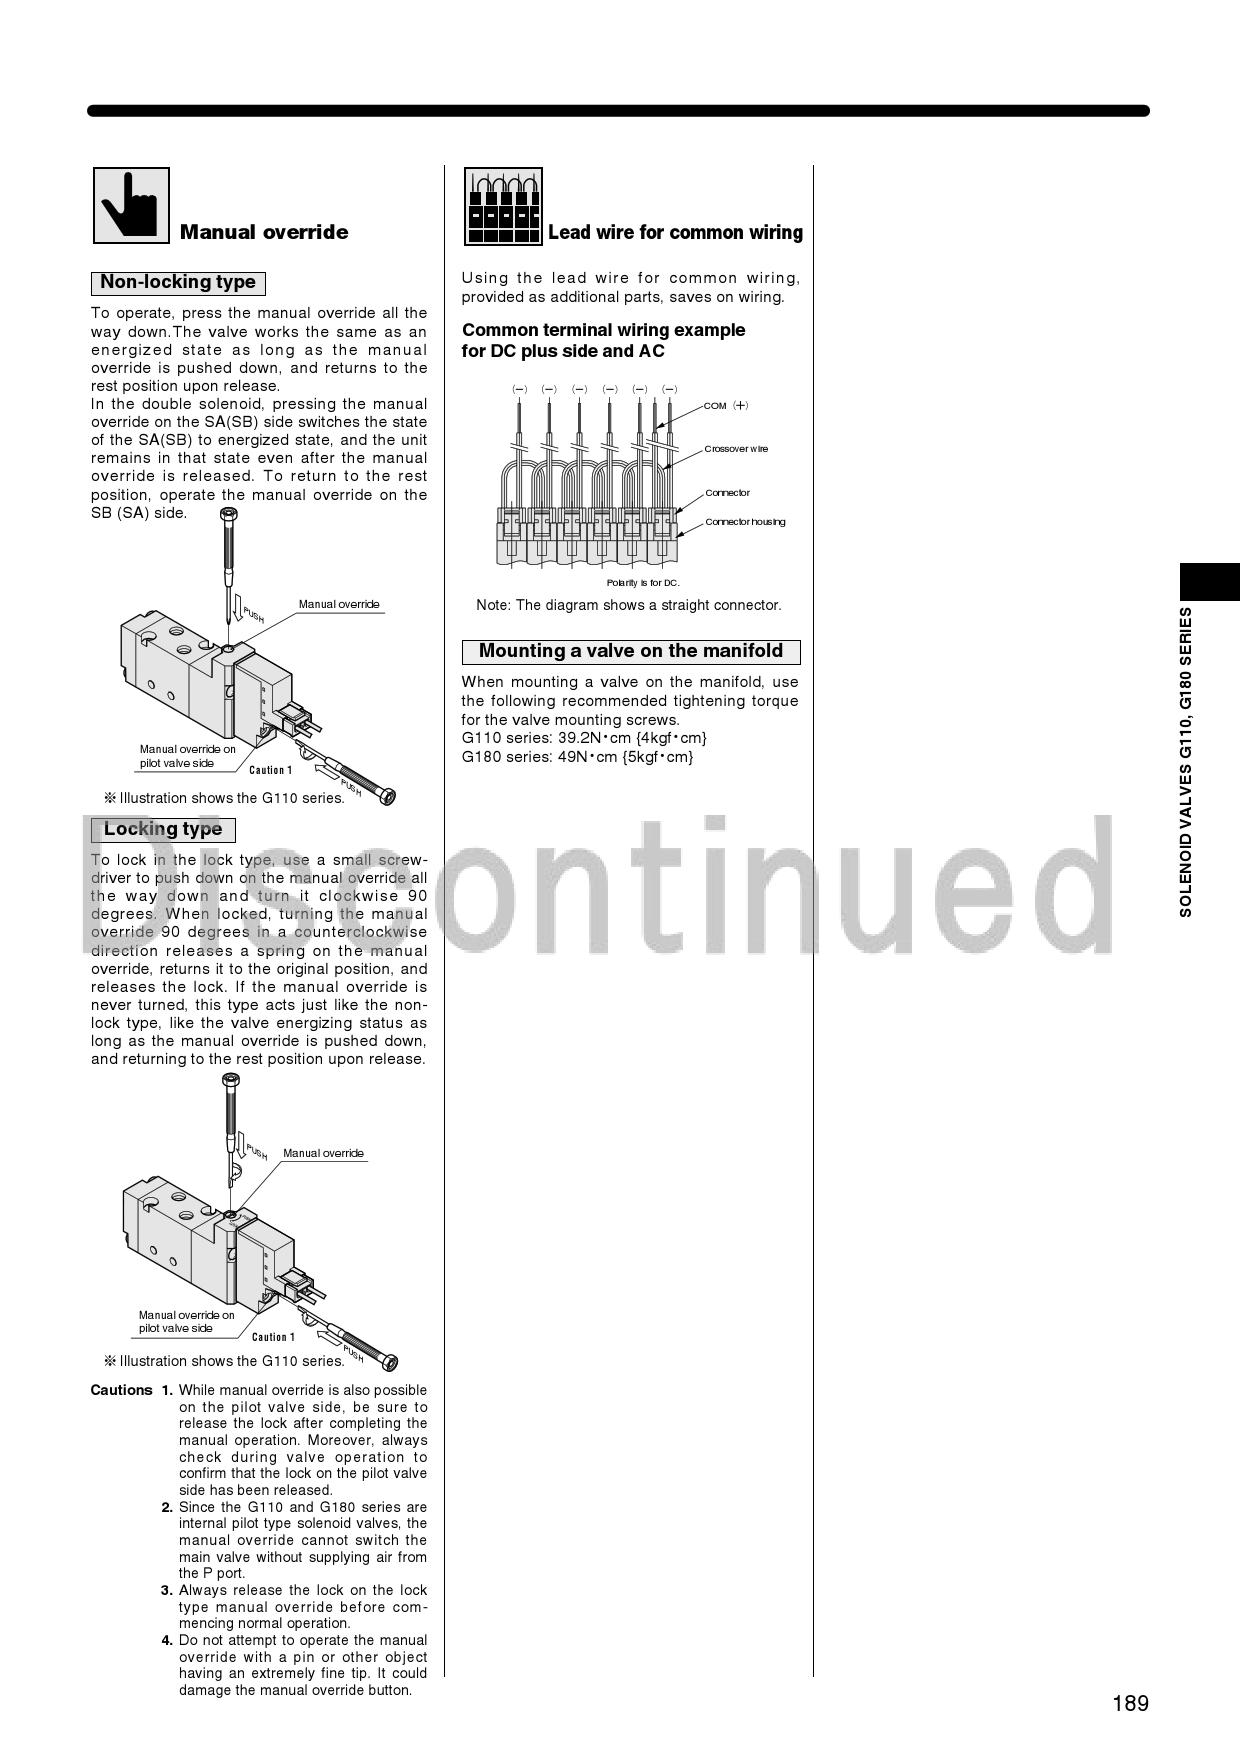 Isuzu Trooper Car Audio Wiring Diagram Will Be A Thing 2002 Rodeo Stereo Harness Imageresizertool Com 1995 1990